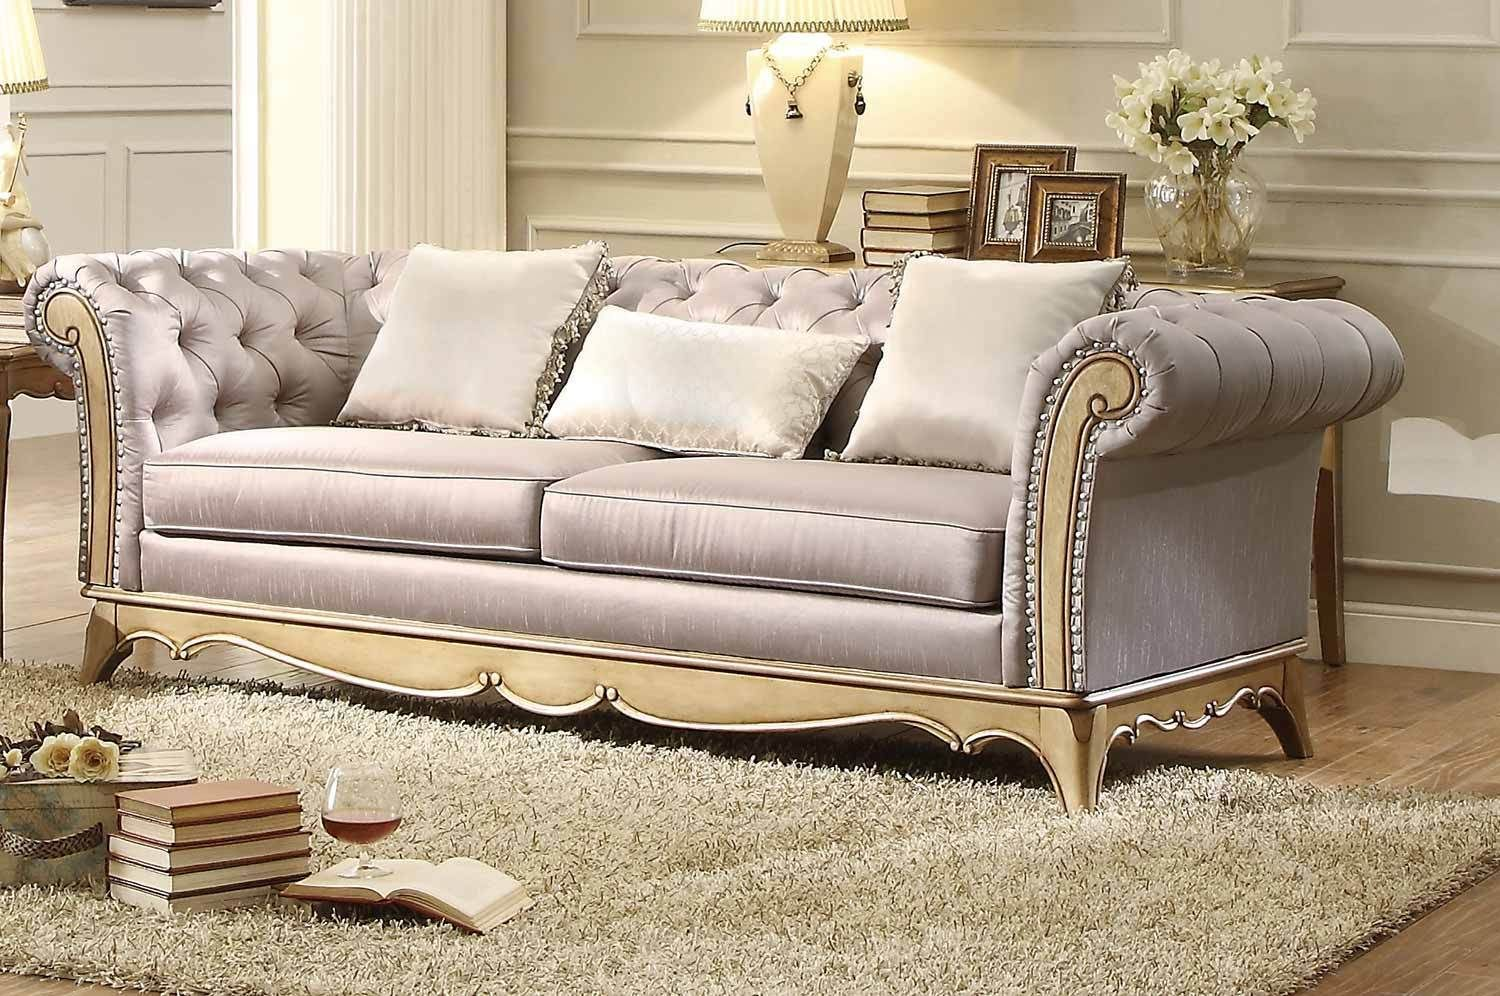 Stunning Faux Silk Upholstered Traditional Tufted Sofa